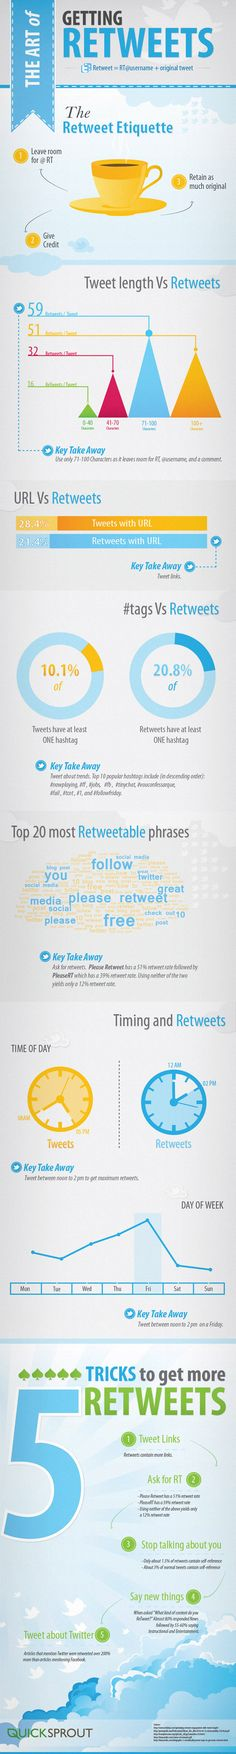 The Art Of Getting More Retweets